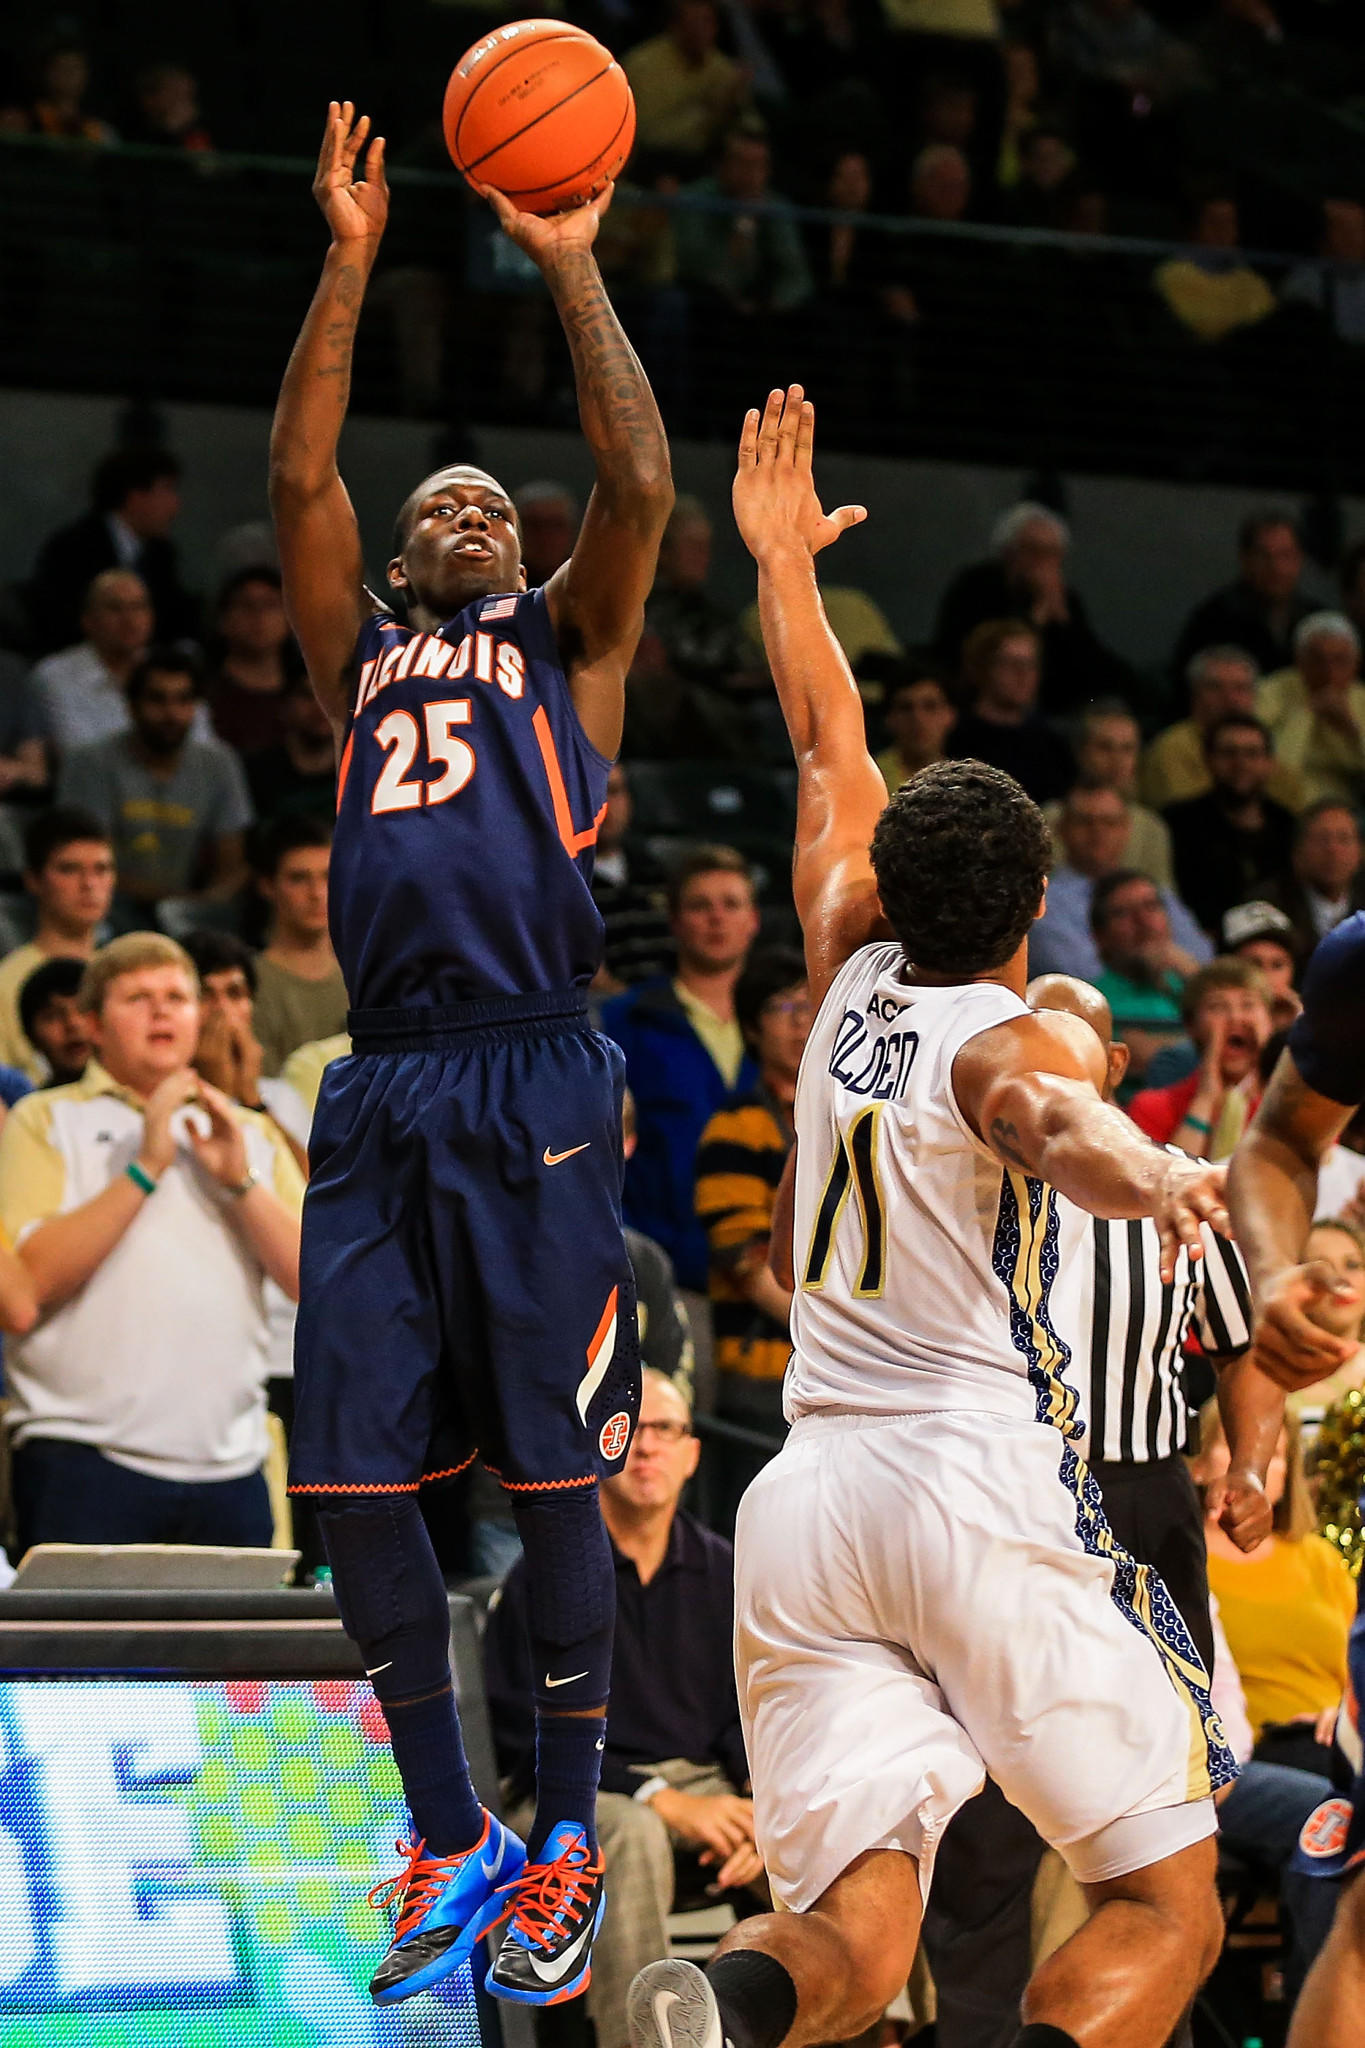 Illini guard Kendrick Nunn shoots the ball in the first half against Georgia Tech.